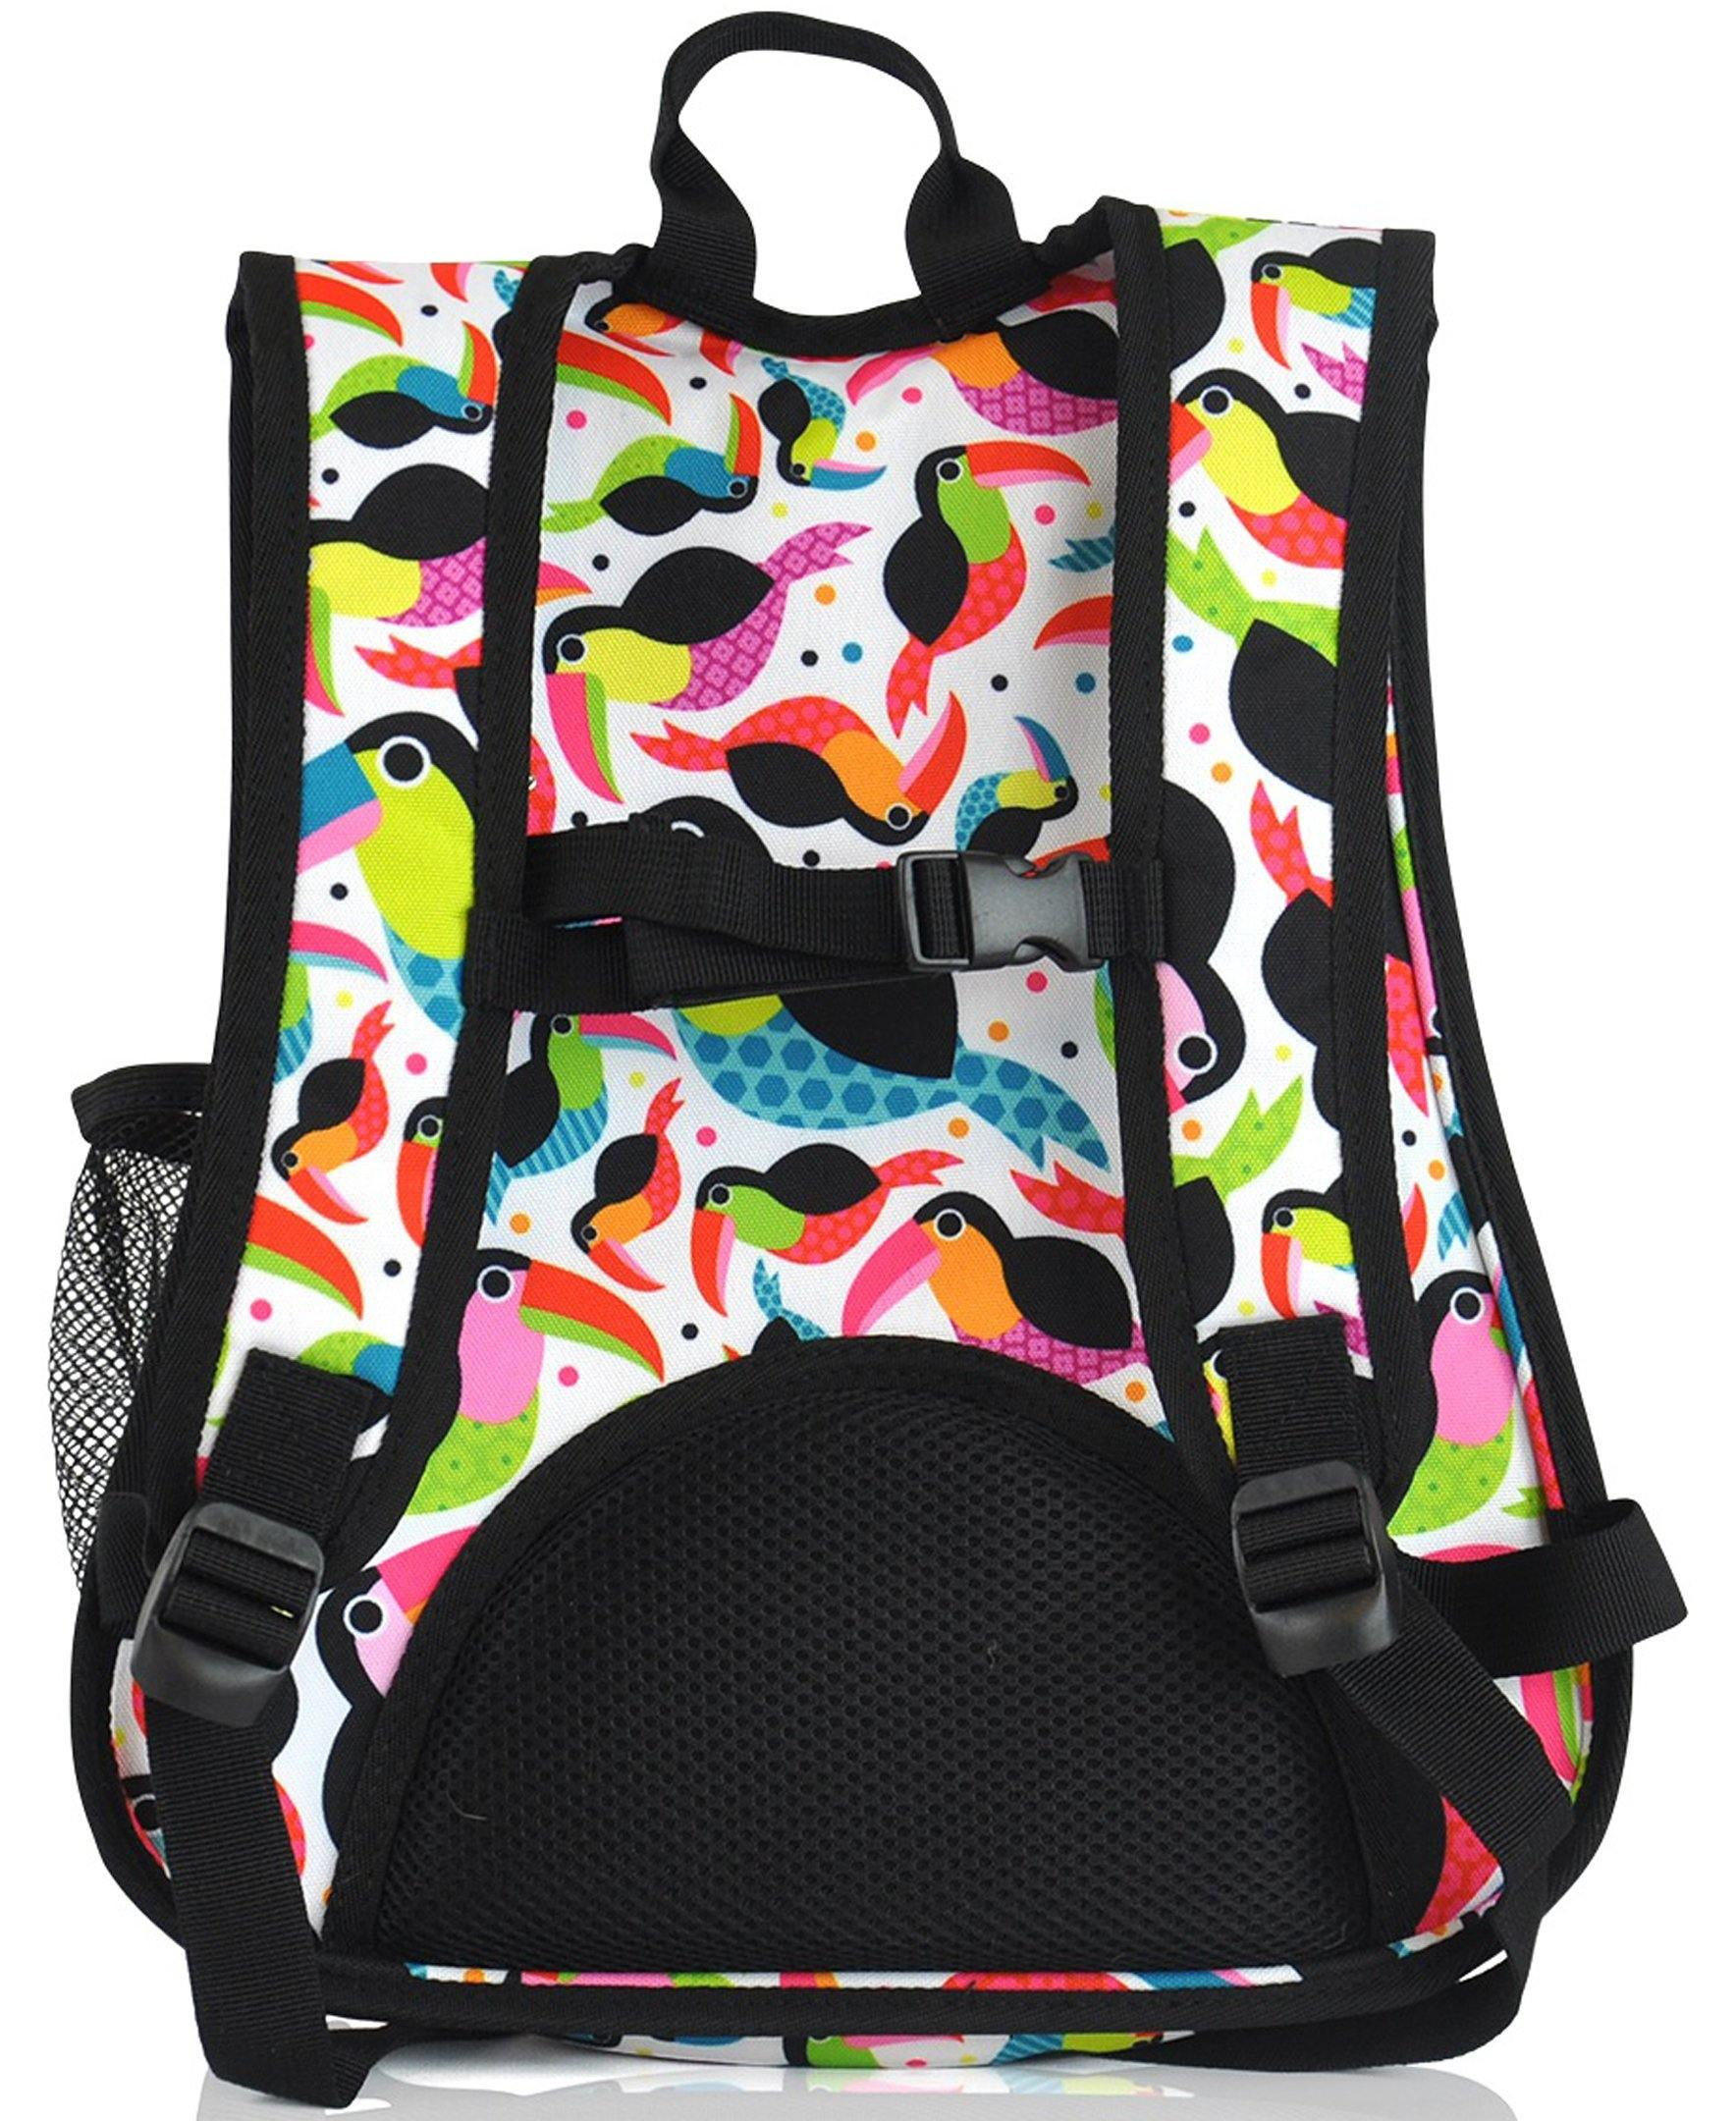 O3KCBP011 Obersee Mini Preschool All-in-One Backpack for Toddlers and Kids with integrated Insulated Cooler | Tie Dye